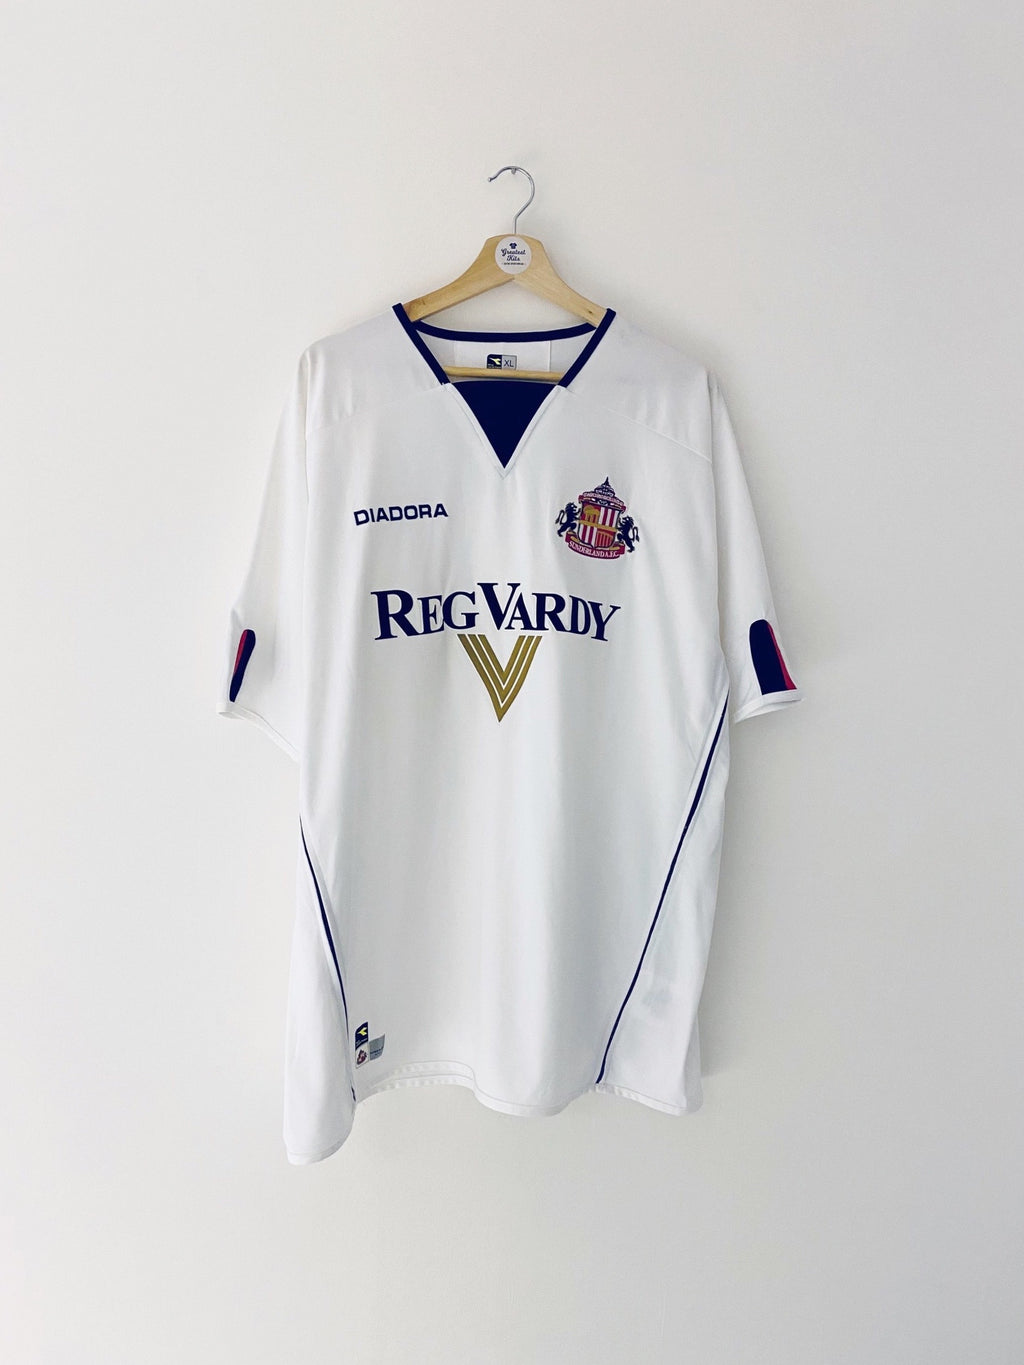 2004/05 Sunderland Away Shirt (XL) 9/10